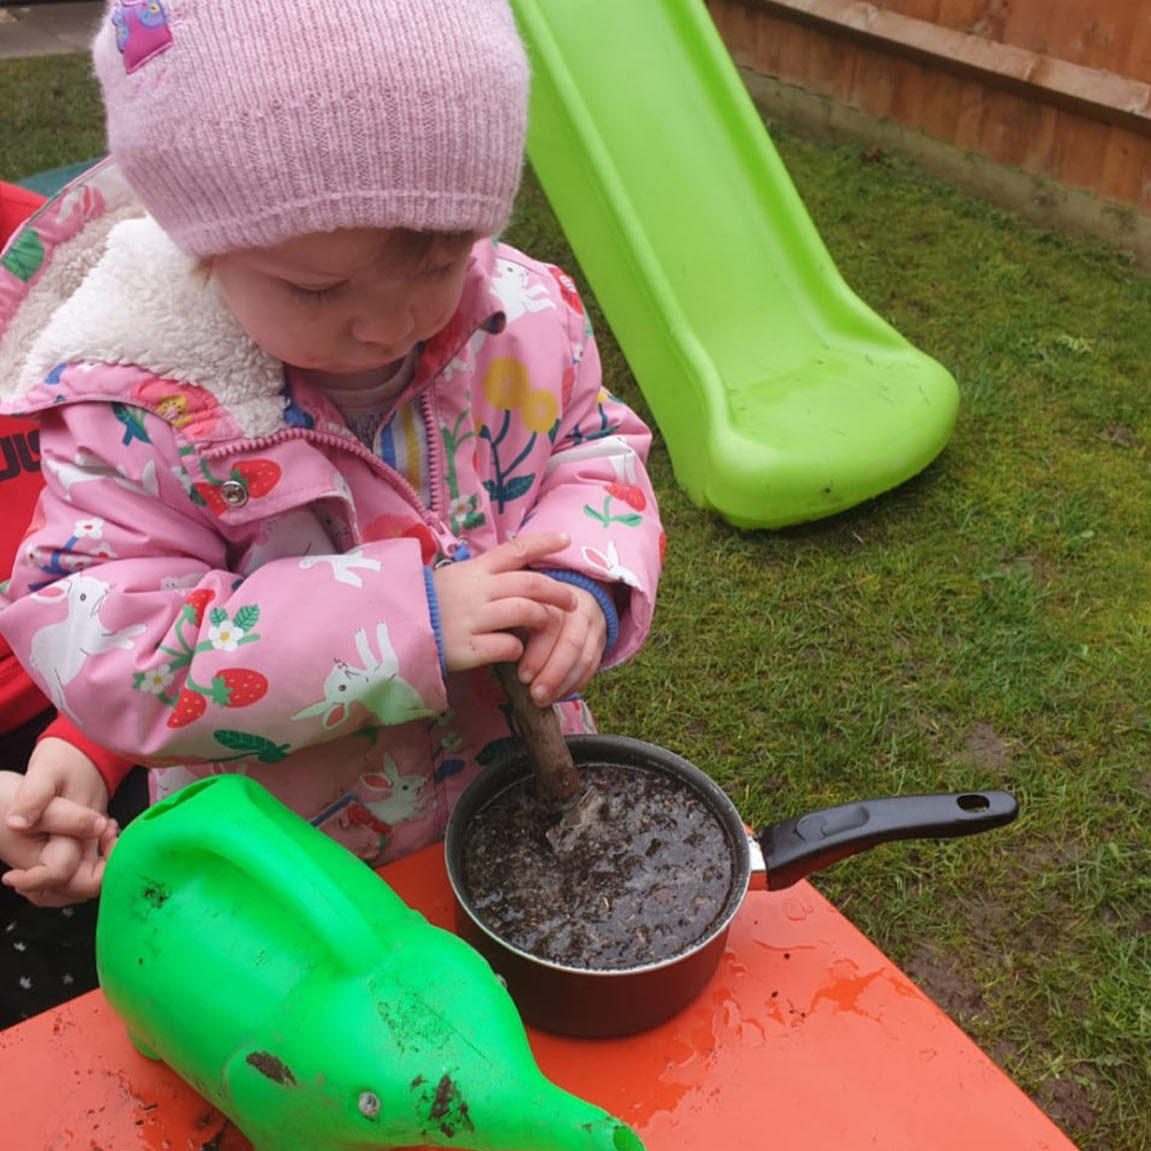 A child in pink, mushing up some mud in a pan on a red child's table.